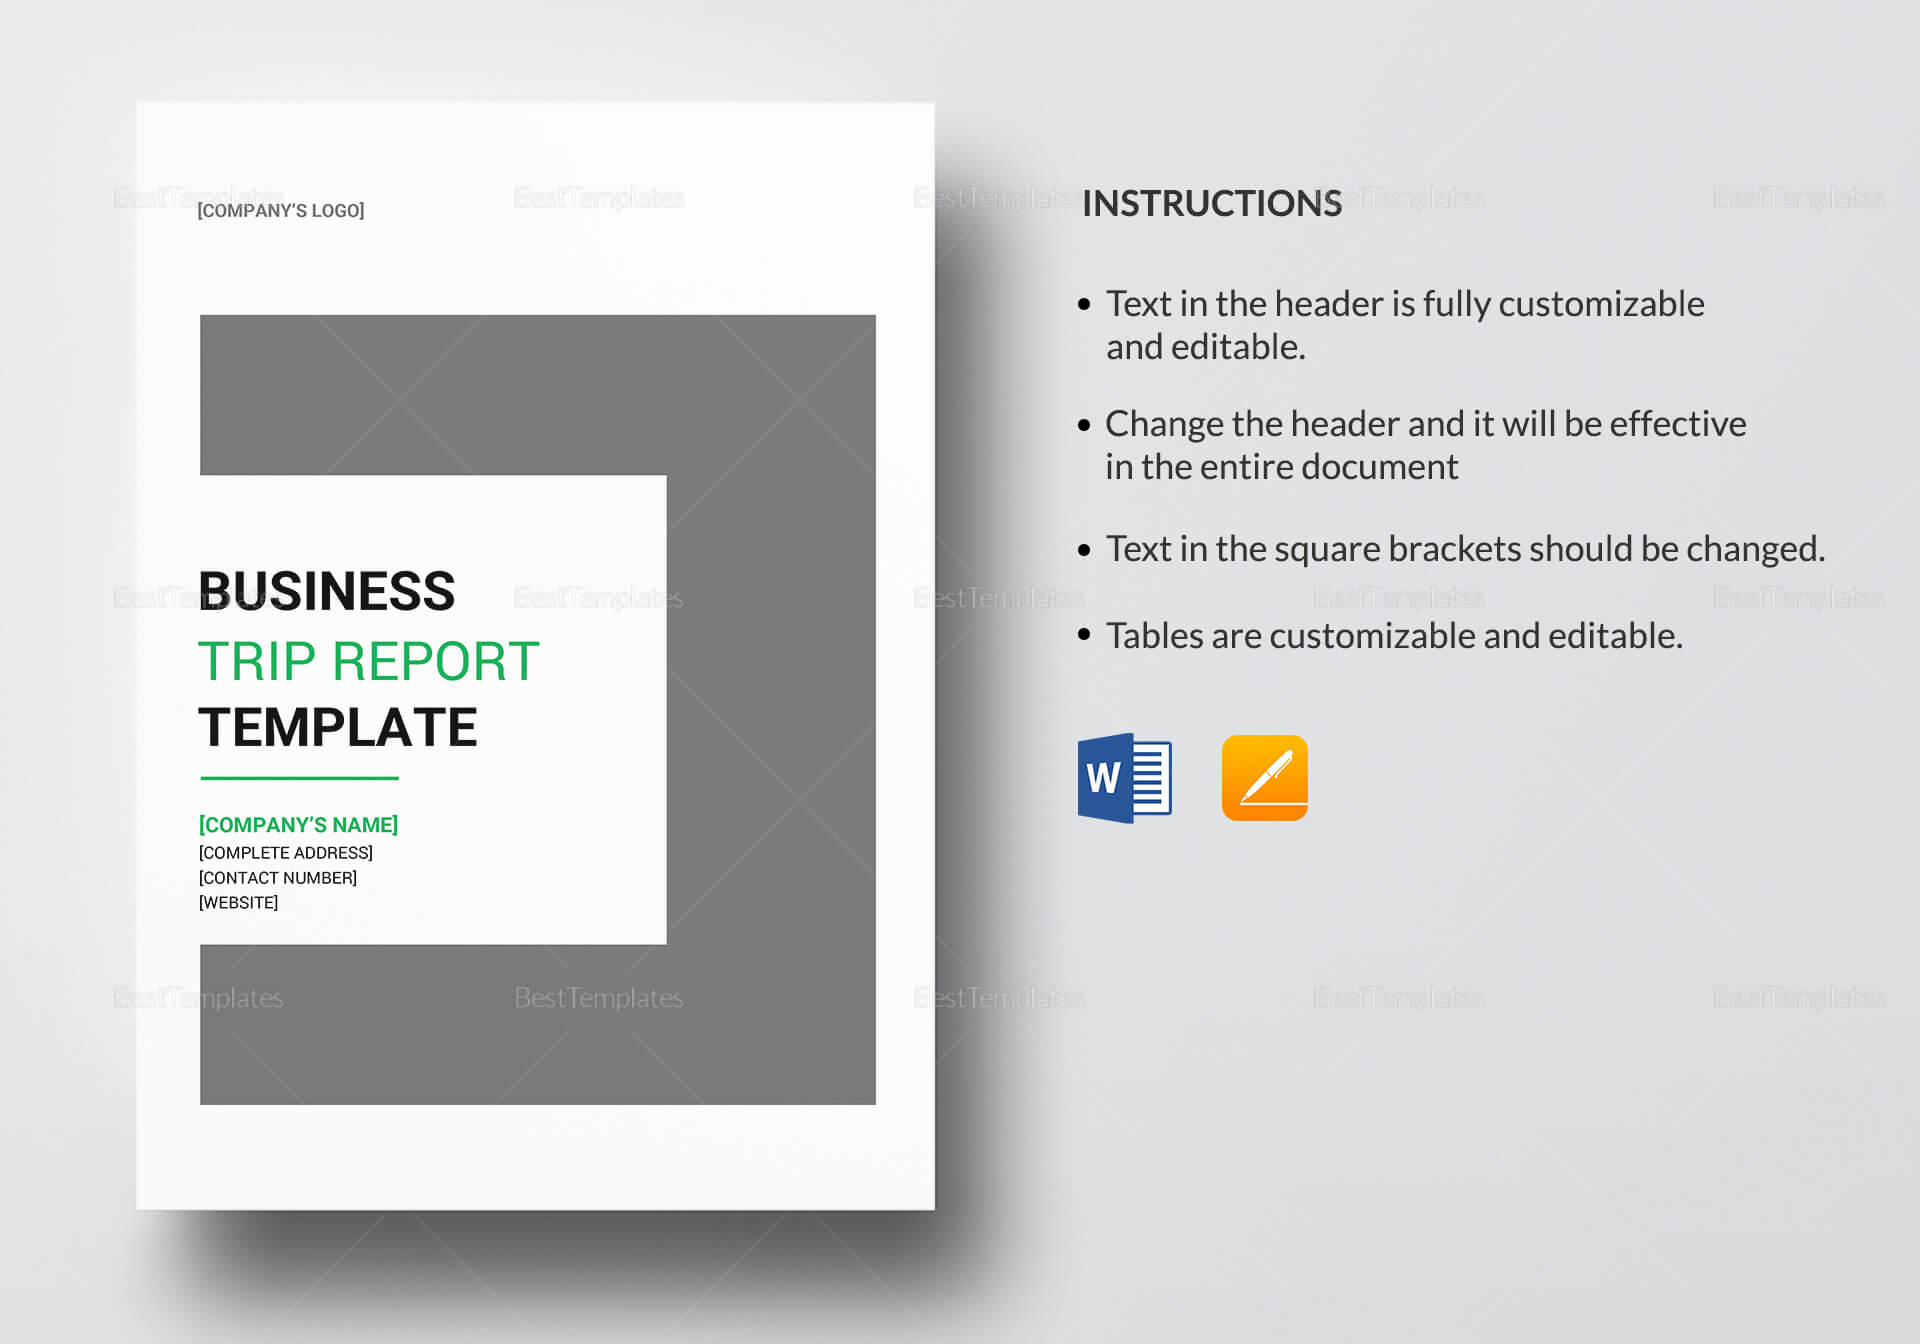 Business Trip Report Template With Business Trip Report Template